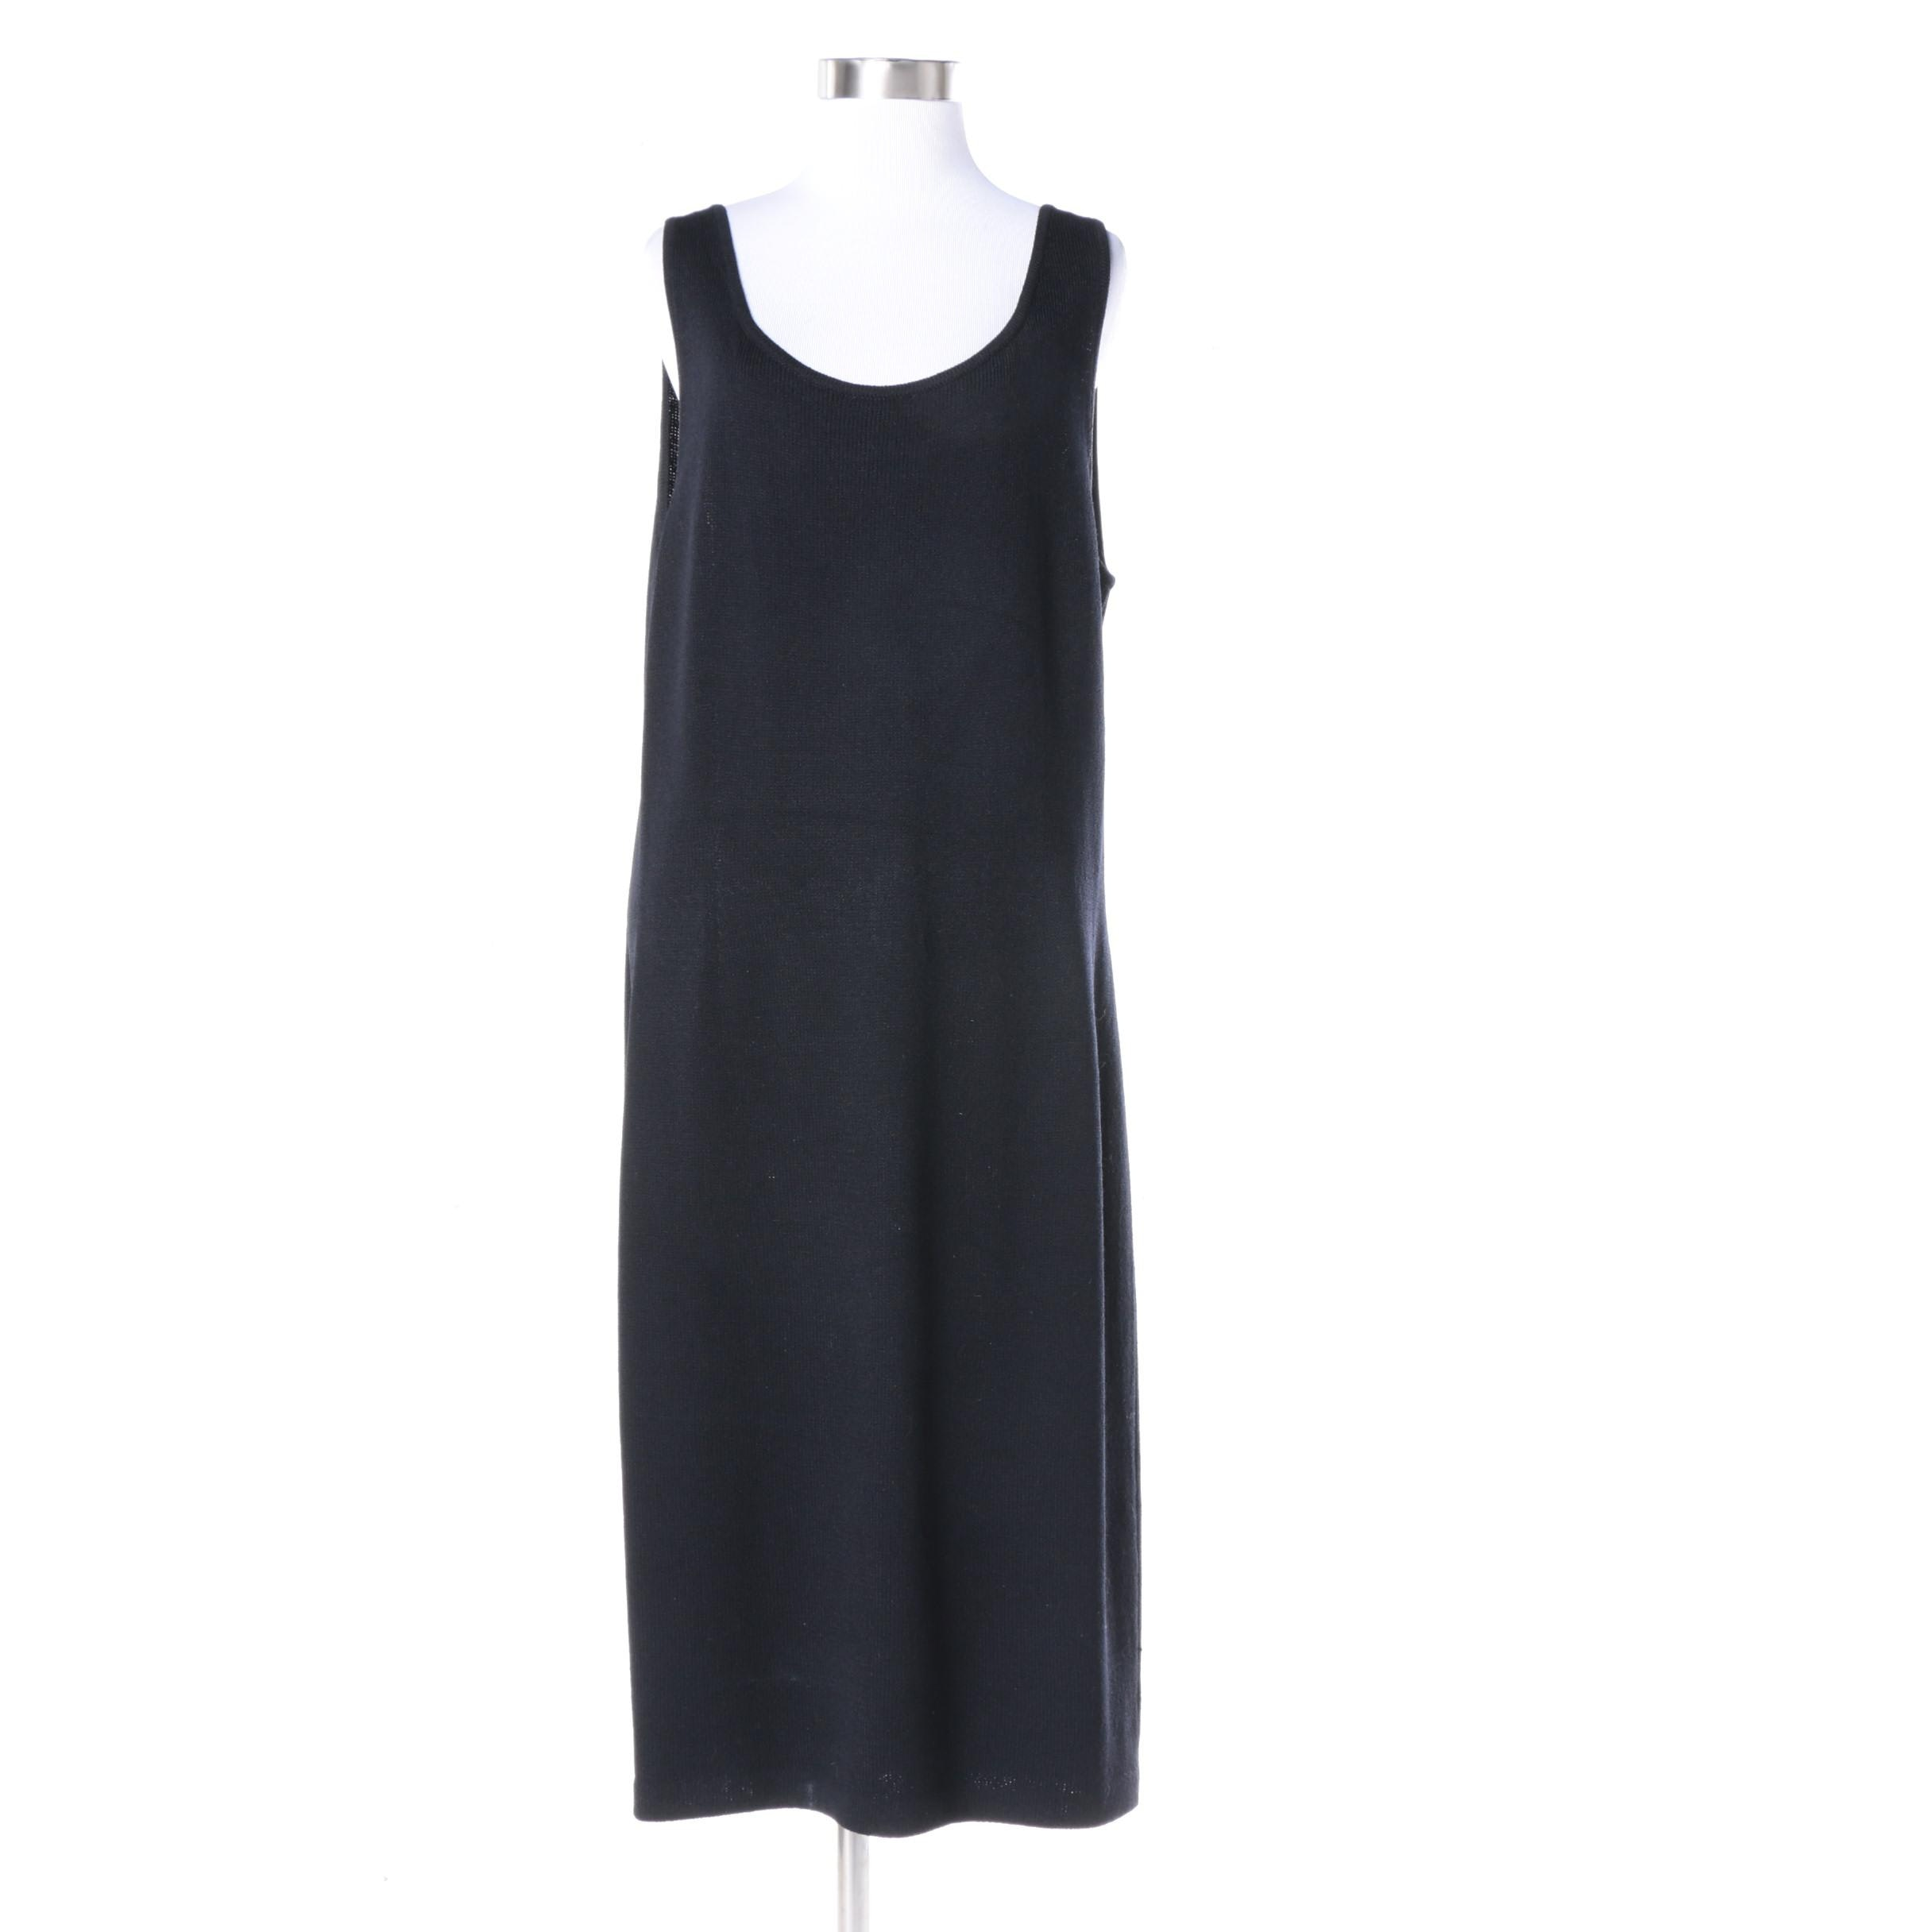 St. John Basics Black Knit Sleeveless Dress